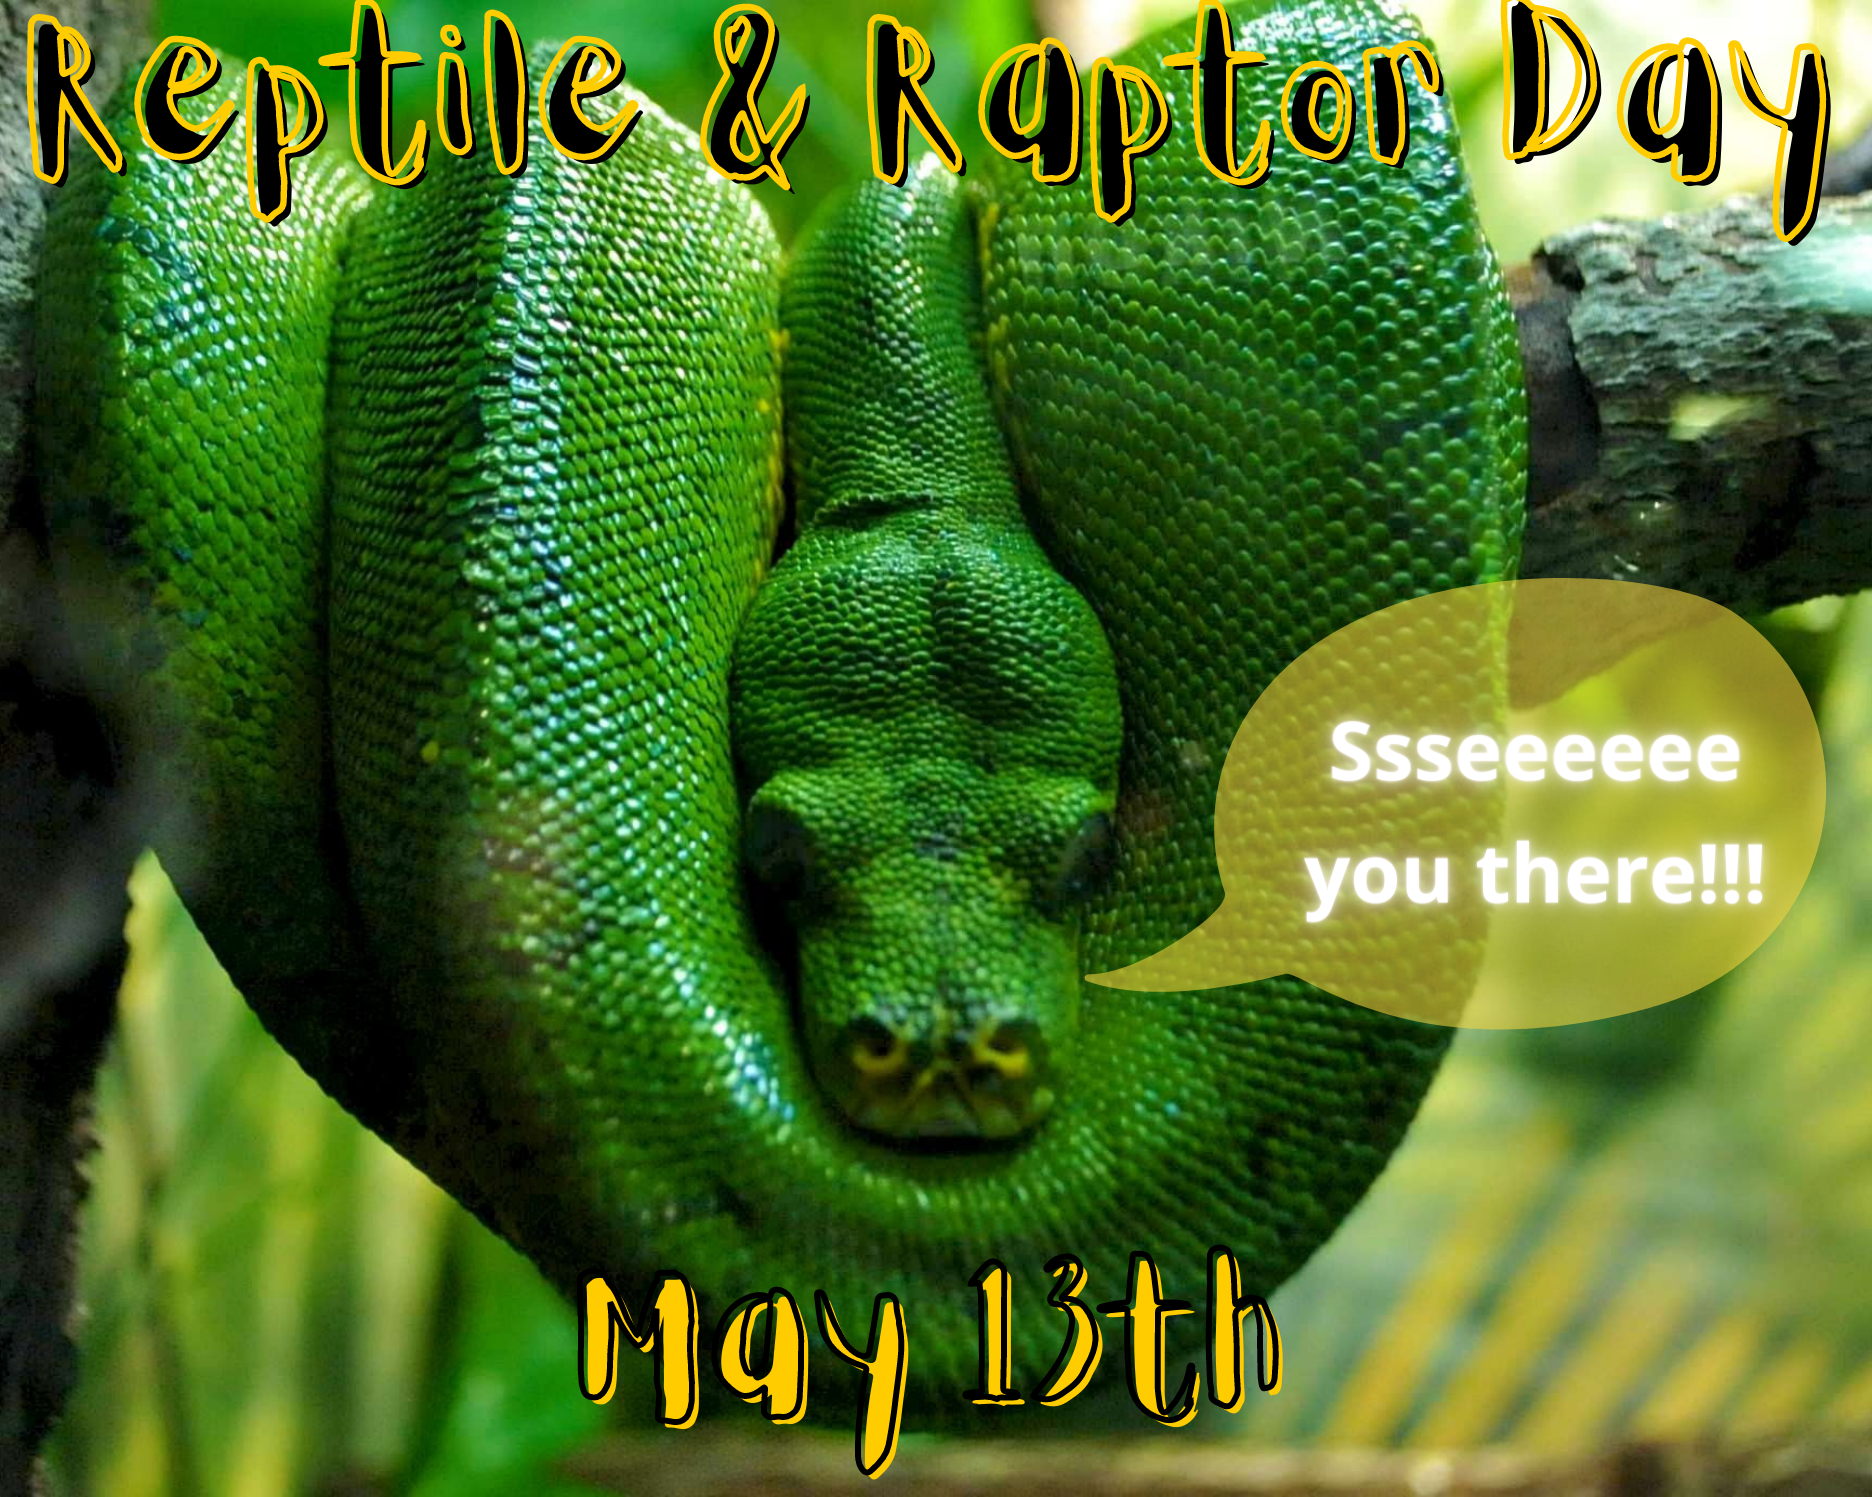 Reptiles and Raptors Day 2021